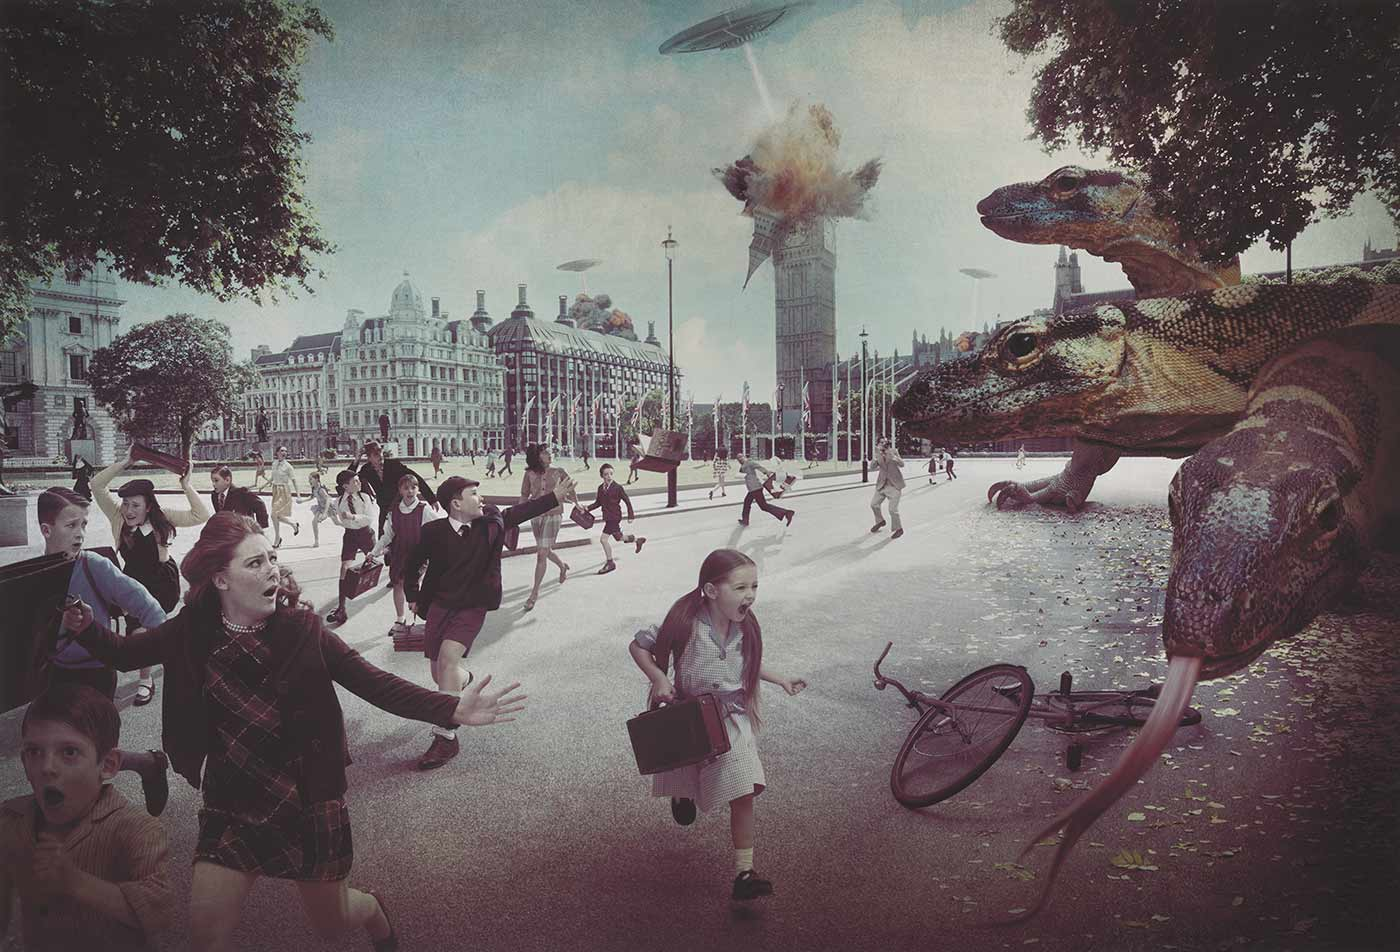 An over sized print featuring a photographic artwork depicting a flying saucer shooting big Ben, a crowd of people in 1960's attire running away toward the right of the picture, and three large lizards on the left. - click to view larger image